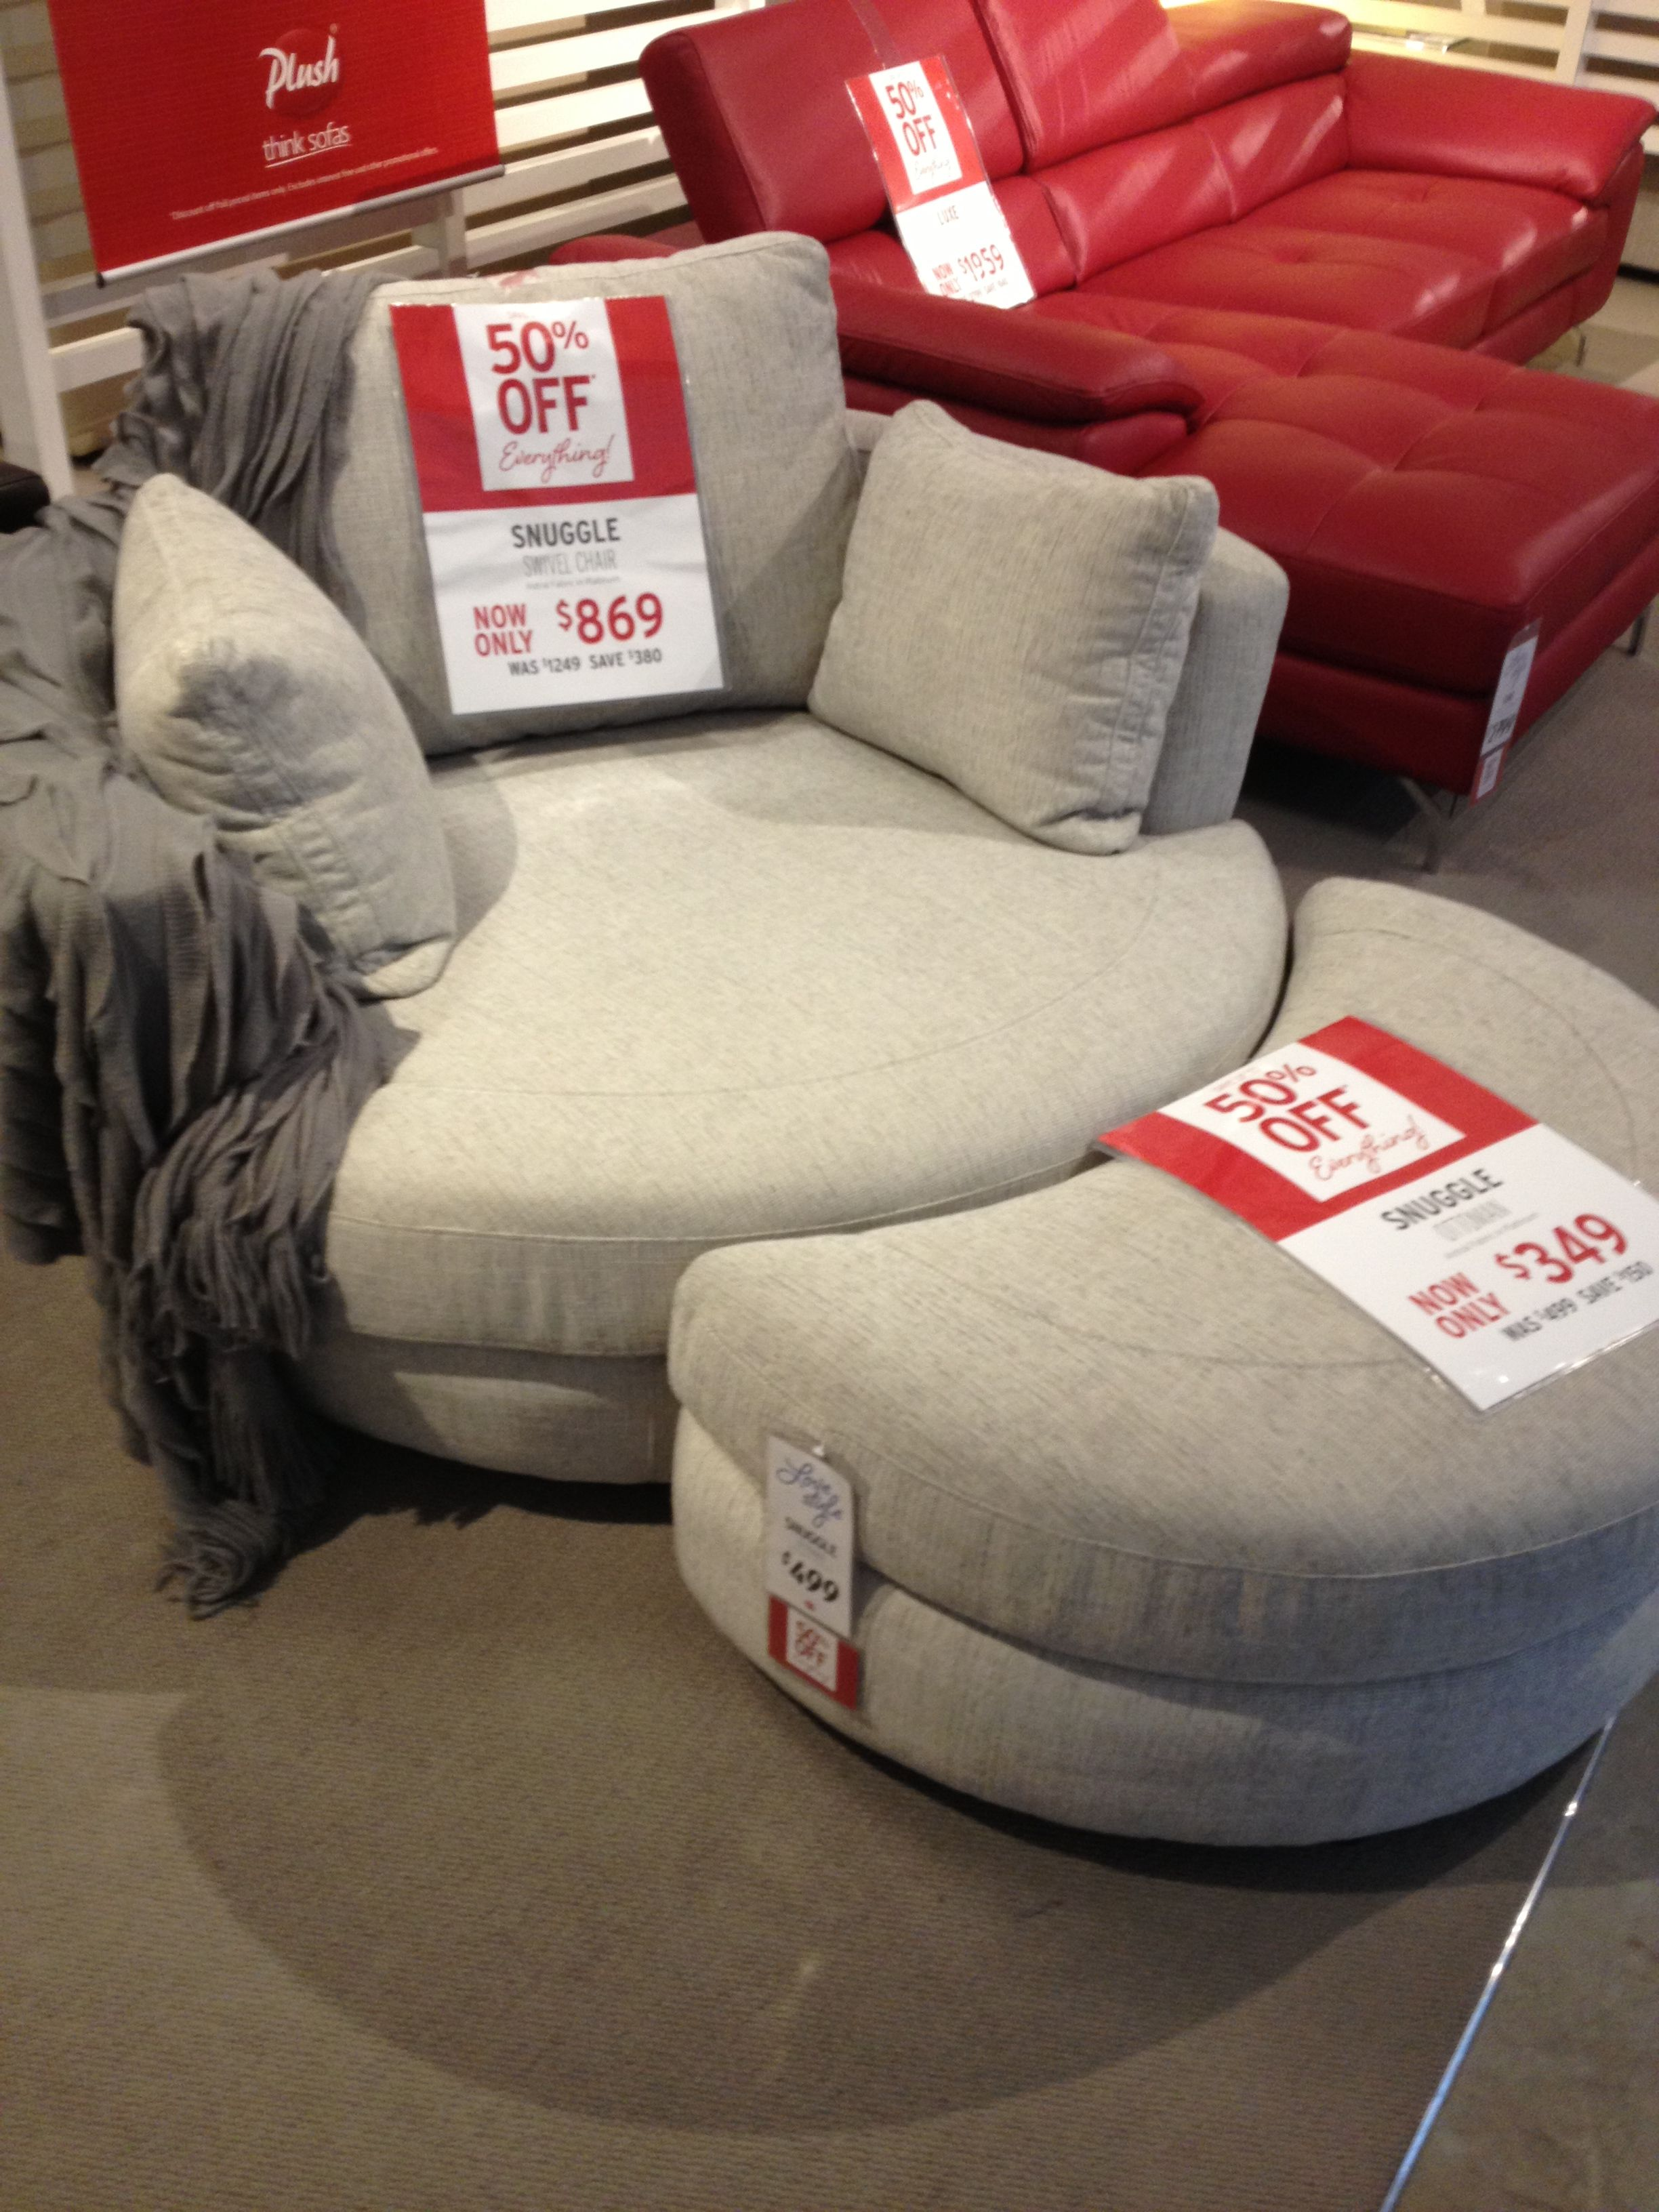 Snuggle Swivel Chair From Plush